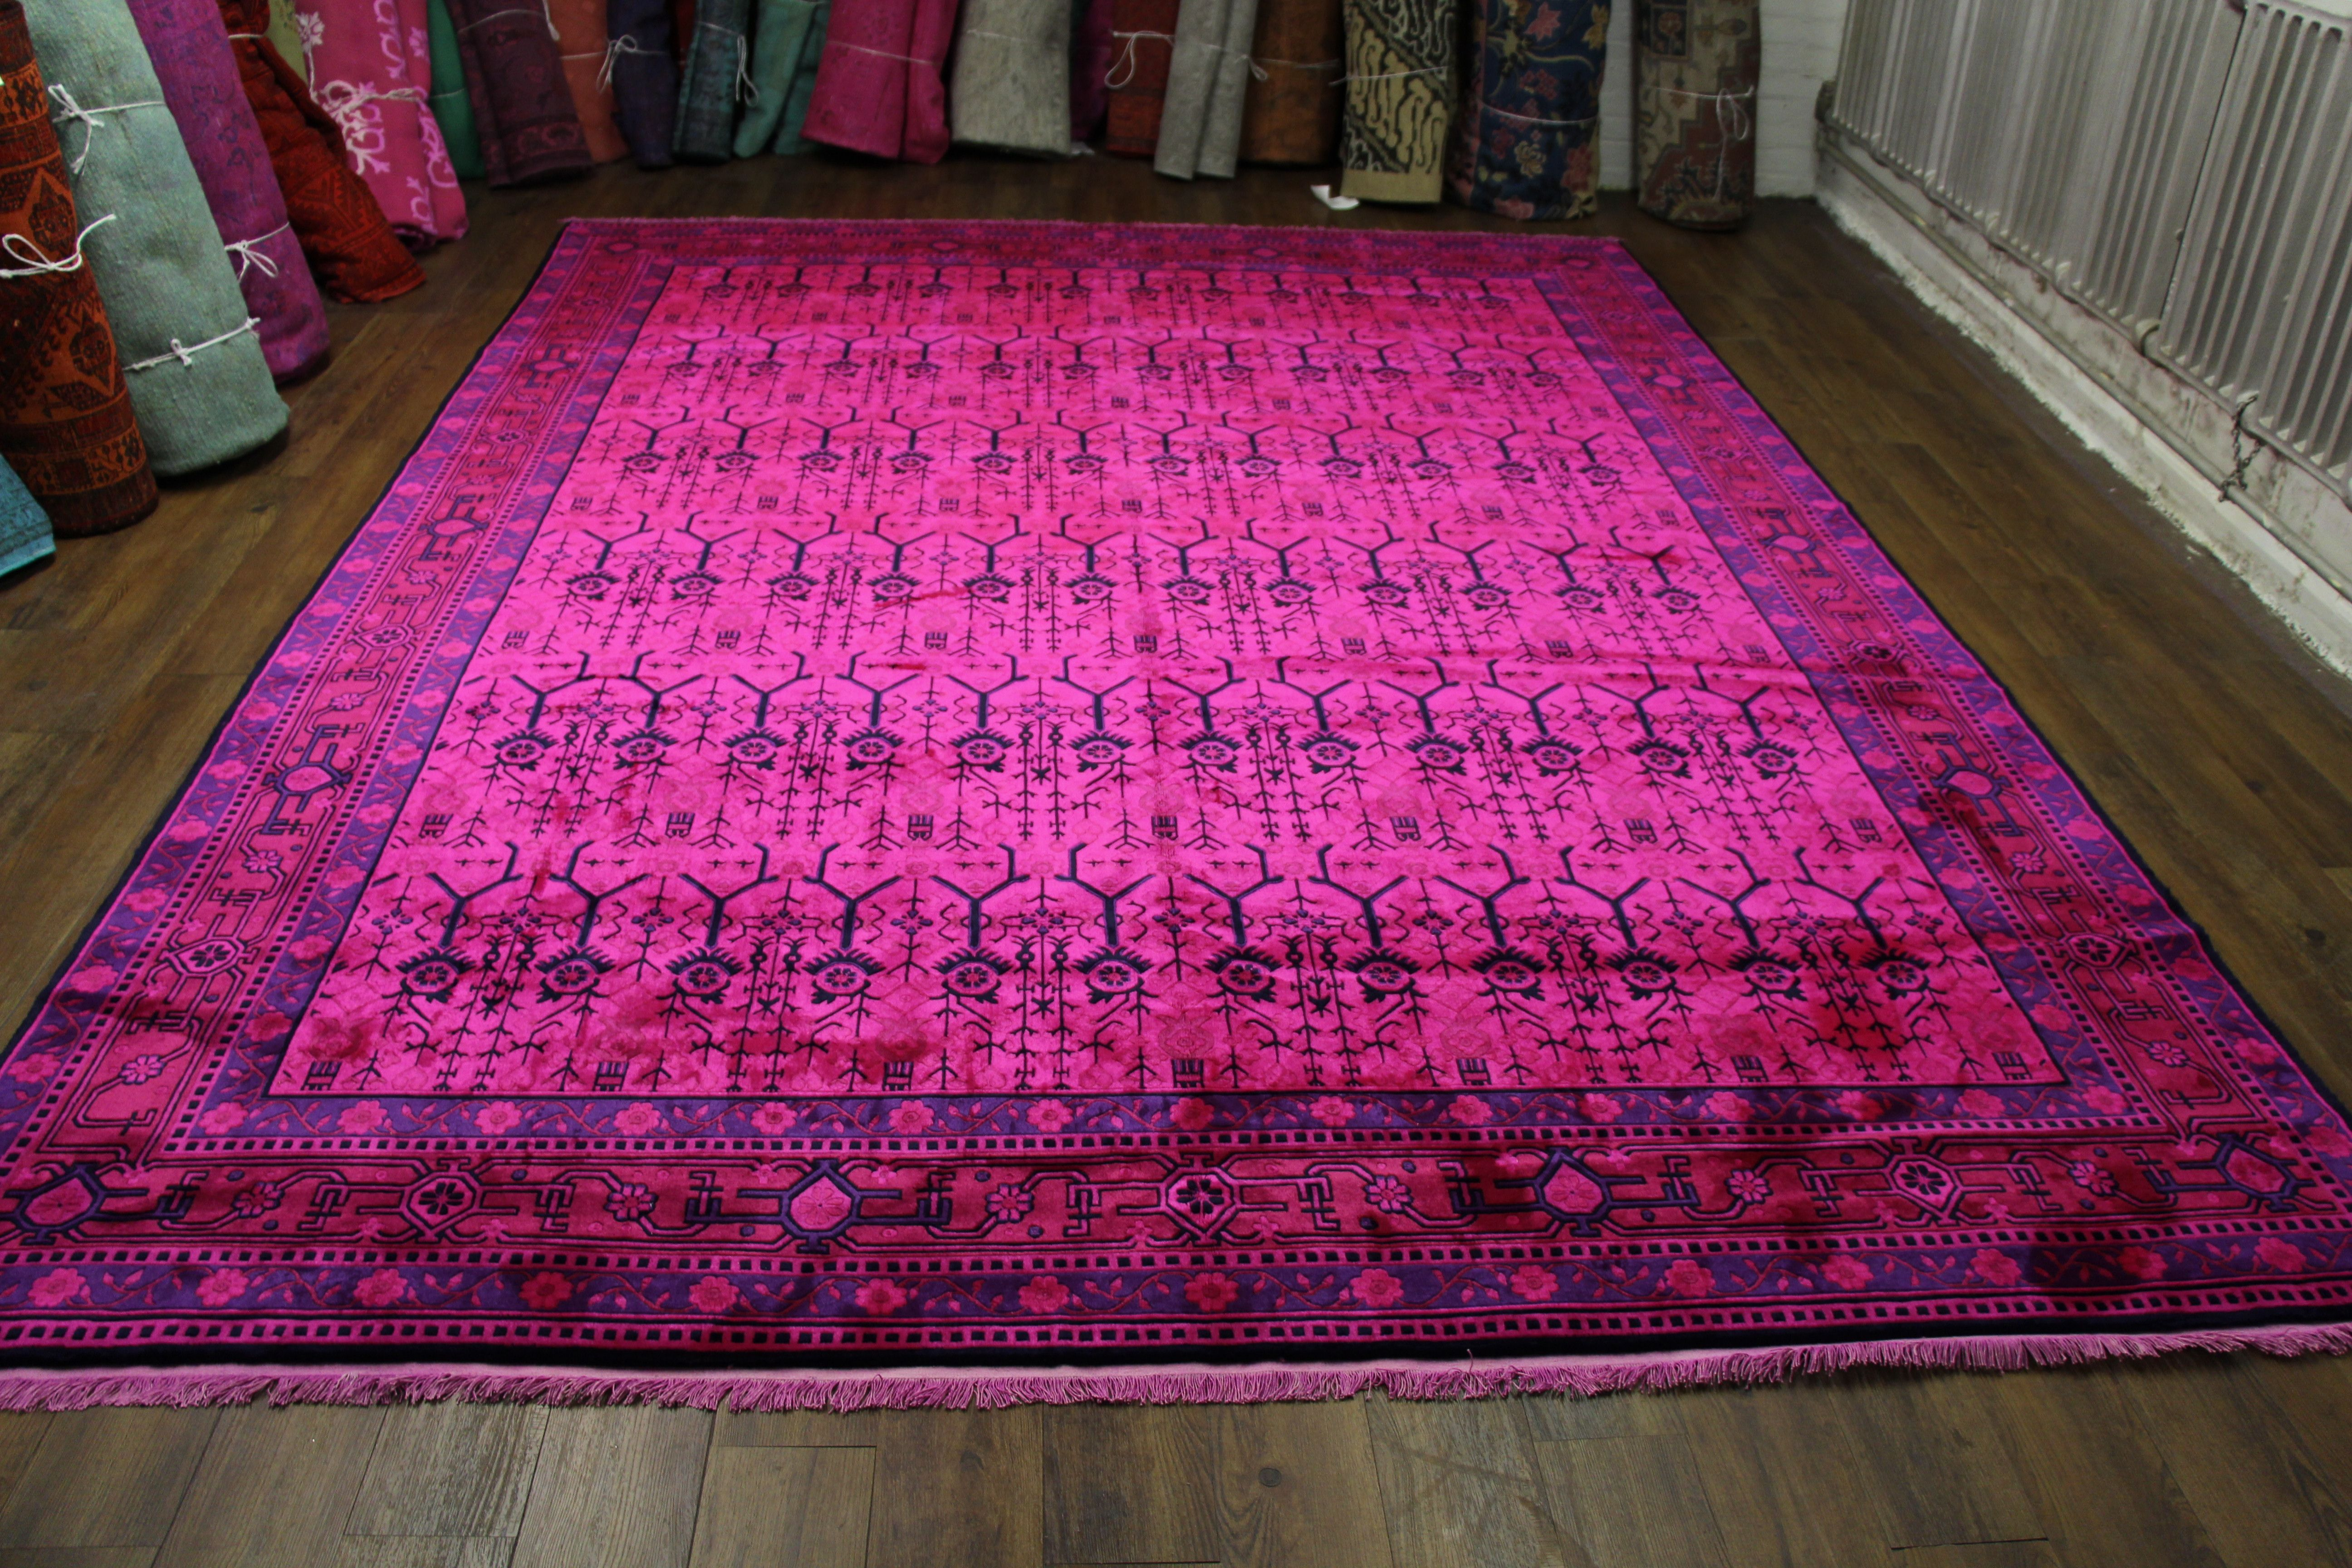 9x12 Hot Pink Rug Overdyed Chinese Art Deco 2719. Amazing Hot Pink Deco Rug.